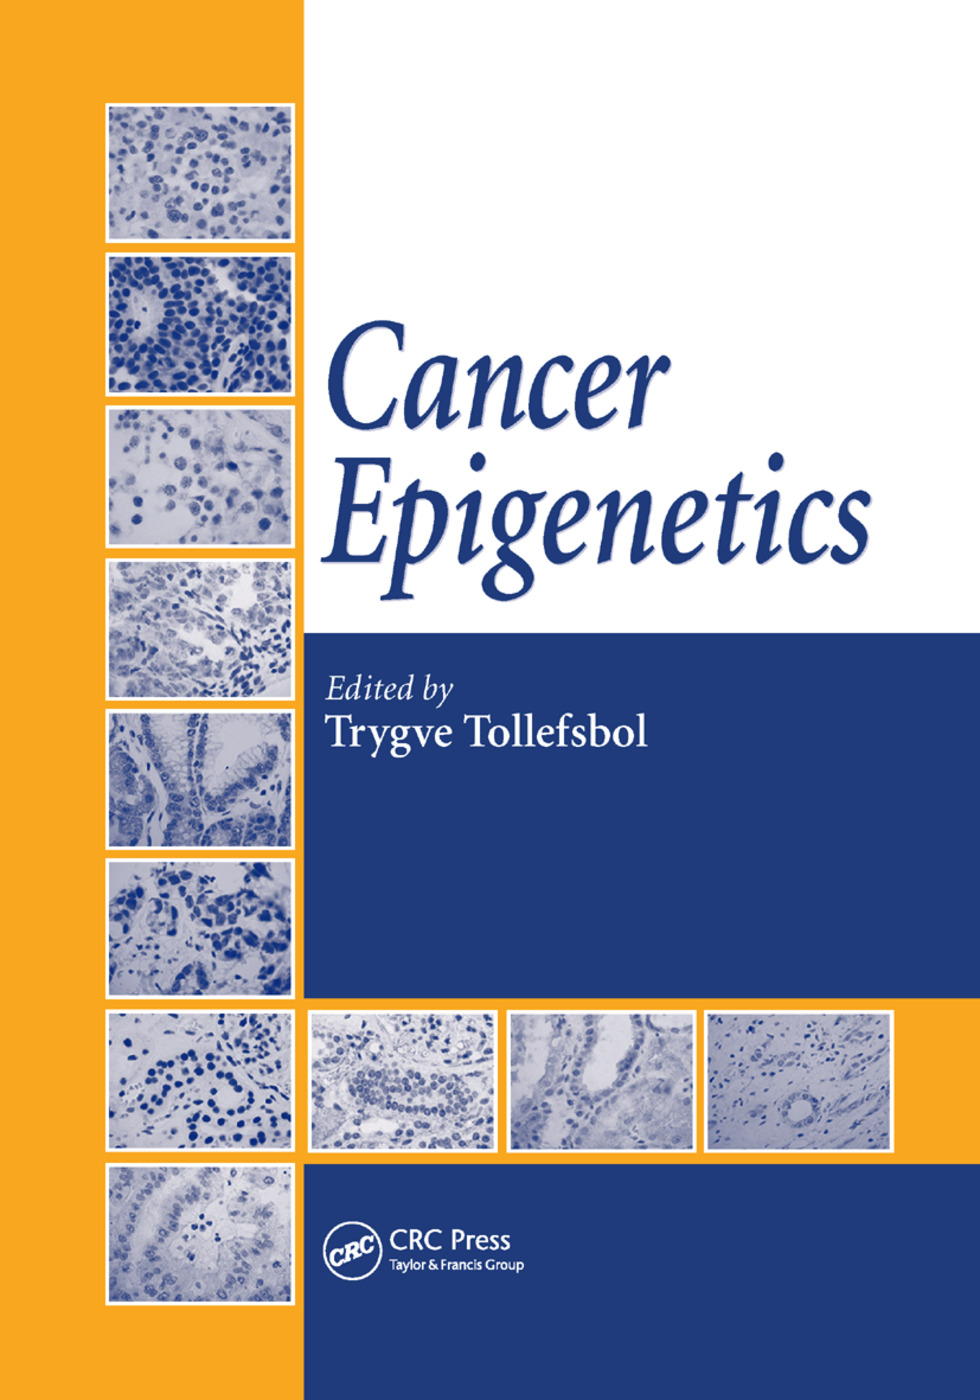 Cancer Epigenetics: 1st Edition (Paperback) book cover